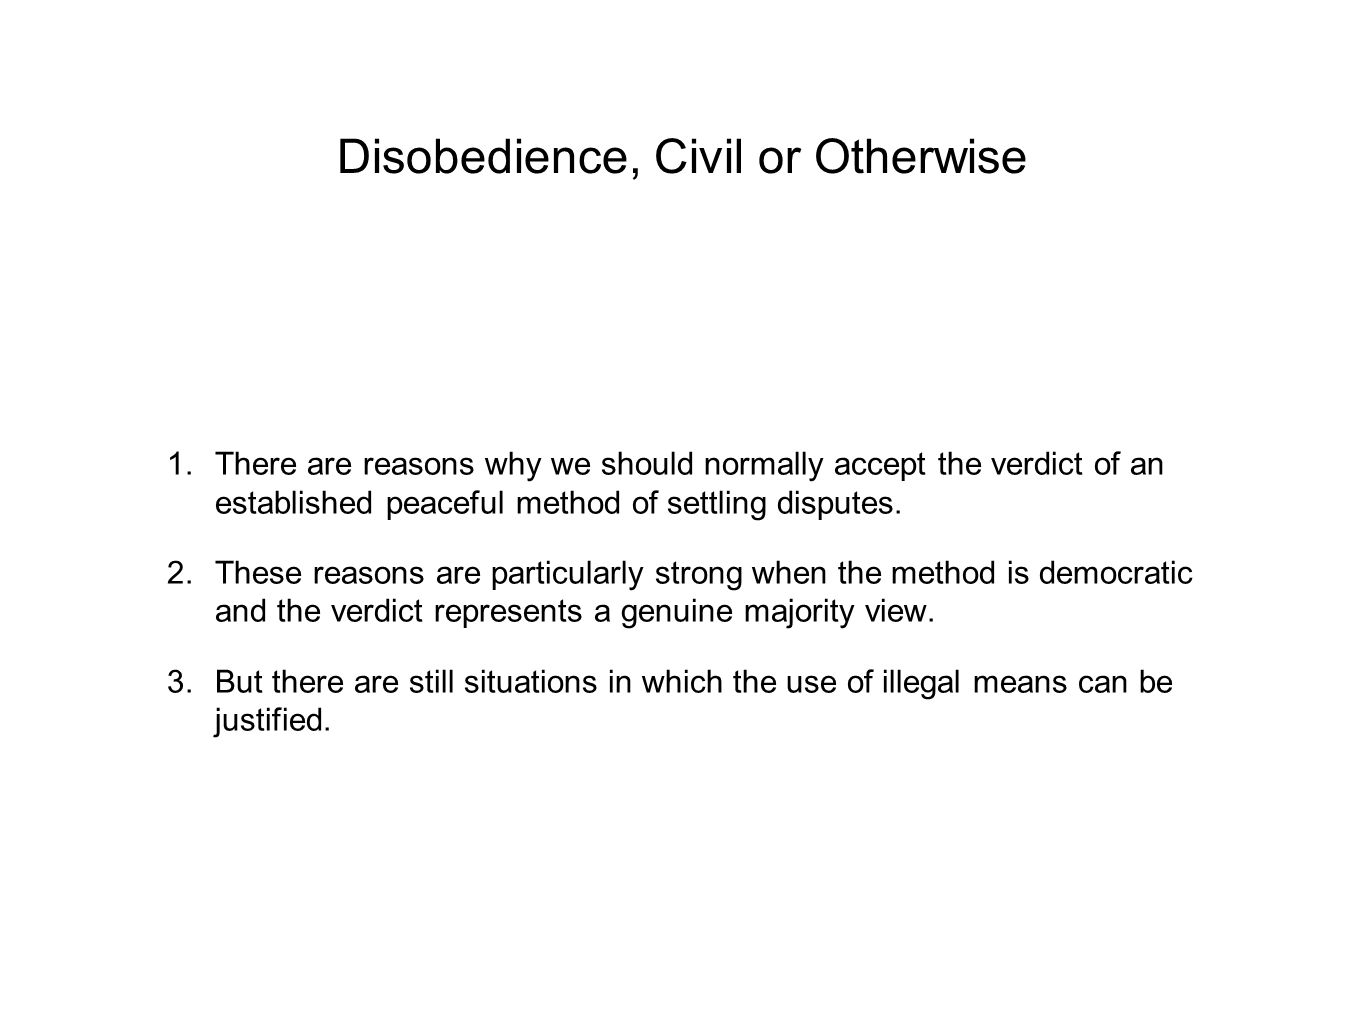 Disobedience, Civil or Otherwise 1.There are reasons why we should normally accept the verdict of an established peaceful method of settling disputes.